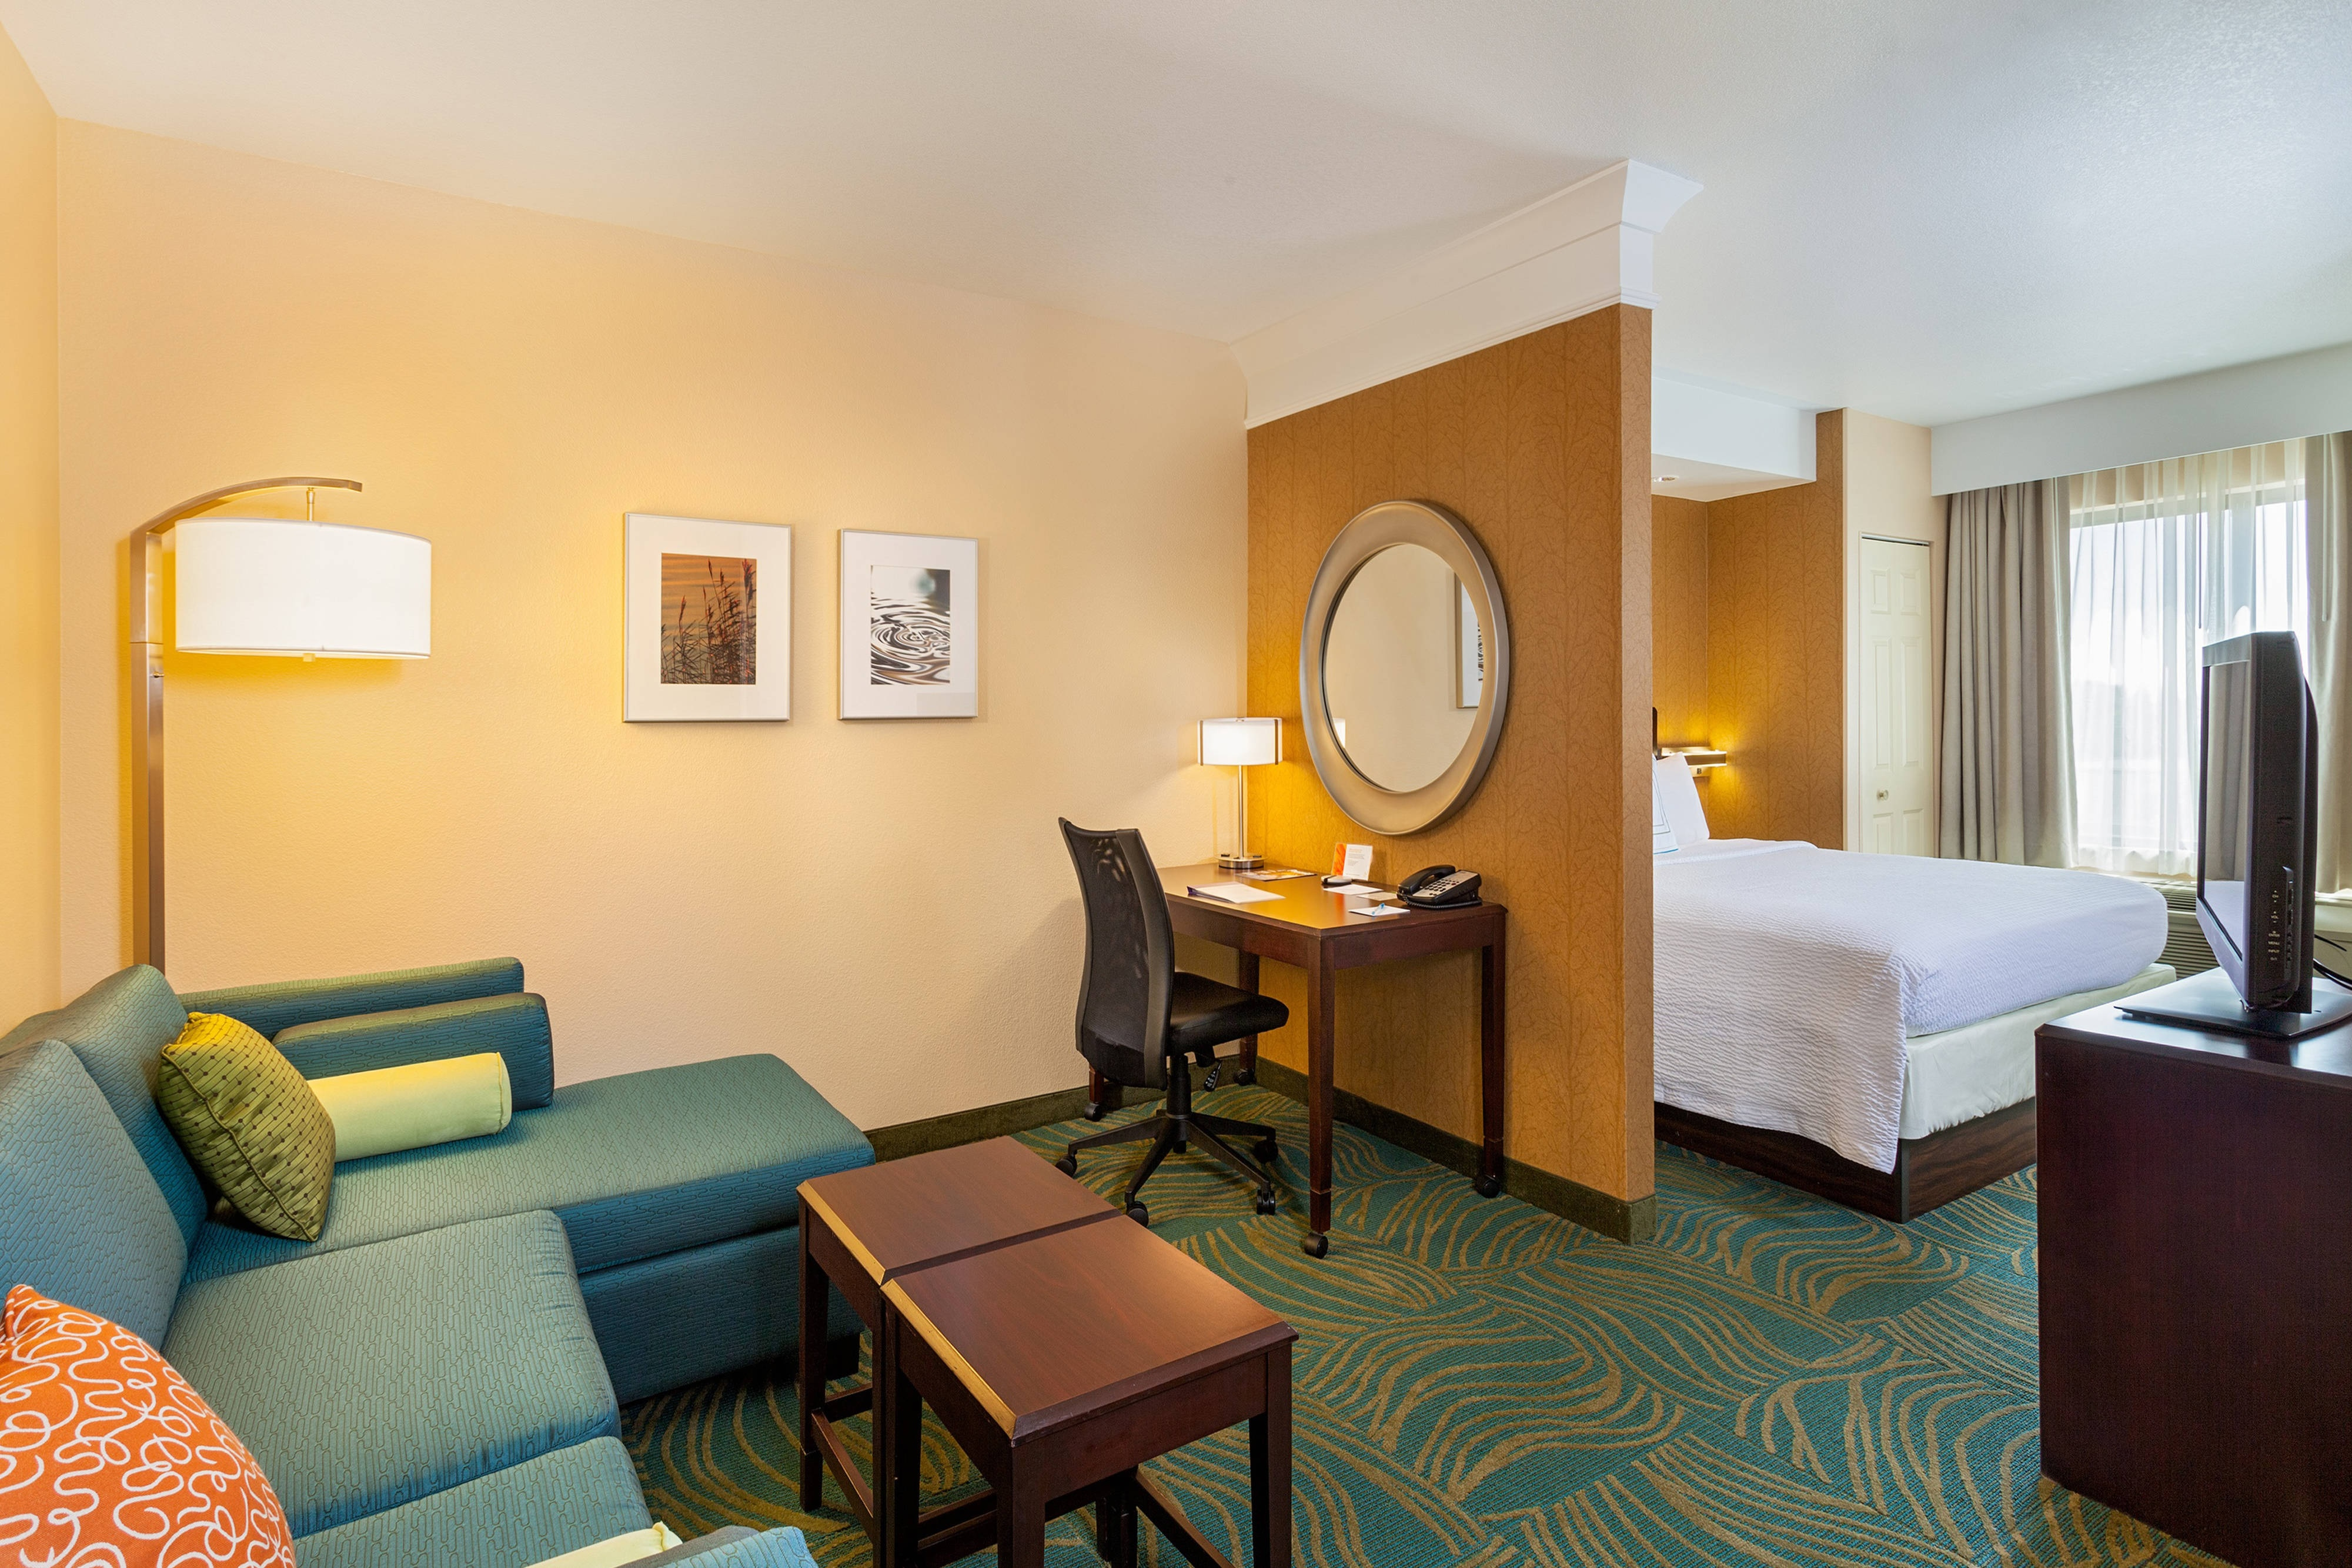 SpringHill Suites Modesto King Suite